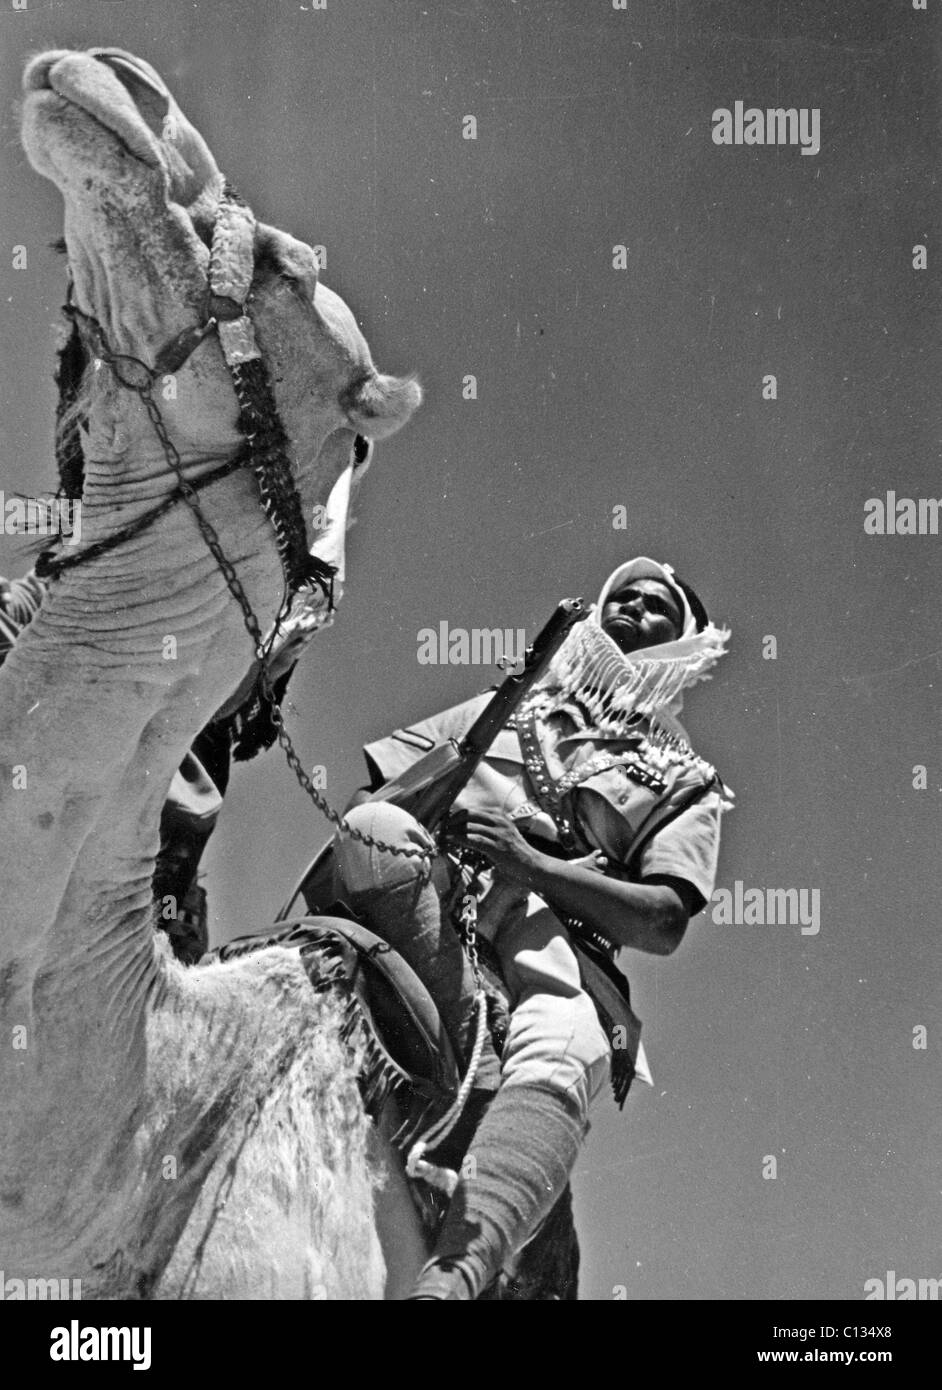 SPANISH FOREIGN LEGION in Morocco about 1956 - Stock Image